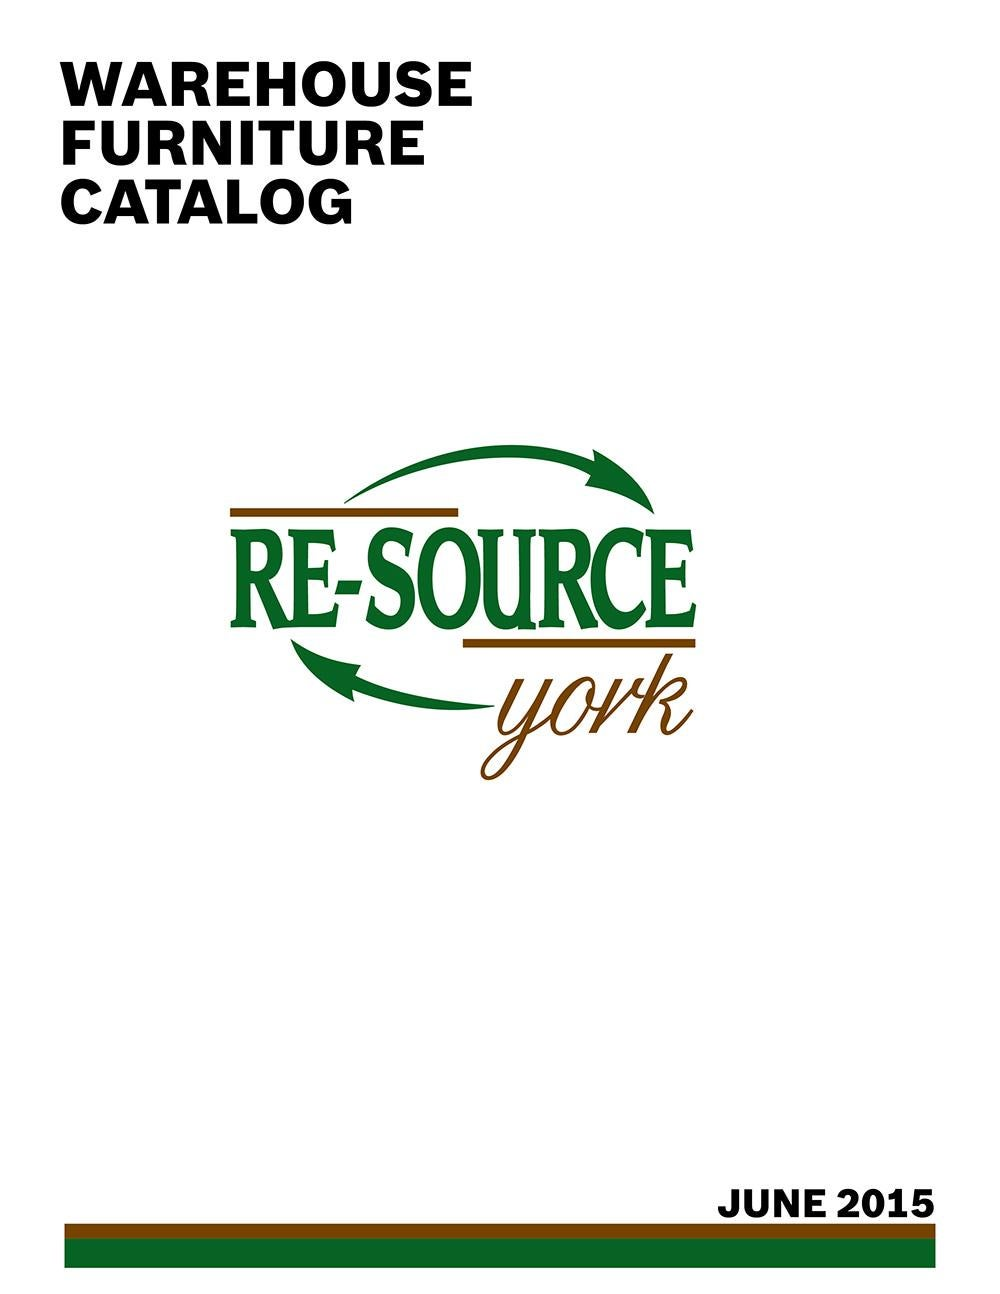 re source york warehouse catalog by re source york issuu. Black Bedroom Furniture Sets. Home Design Ideas